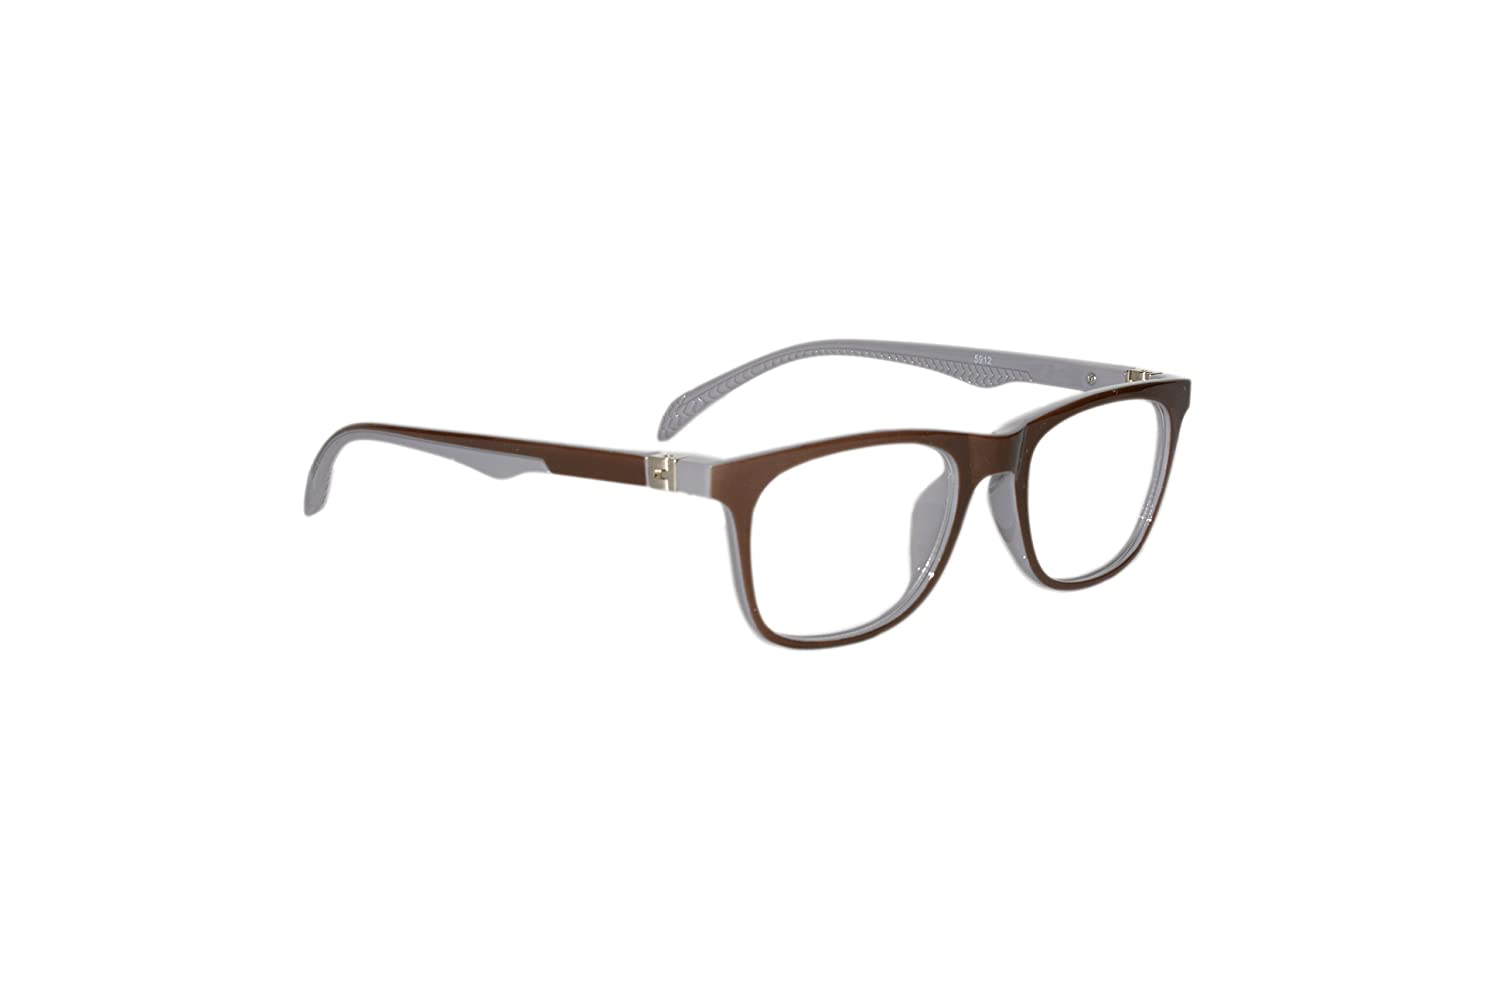 1ac00a97d5 Peter Jones Brown and Grey Unisex Square Optical Frame with Flexible  Temples (5912IGR)  Amazon.in  Clothing   Accessories